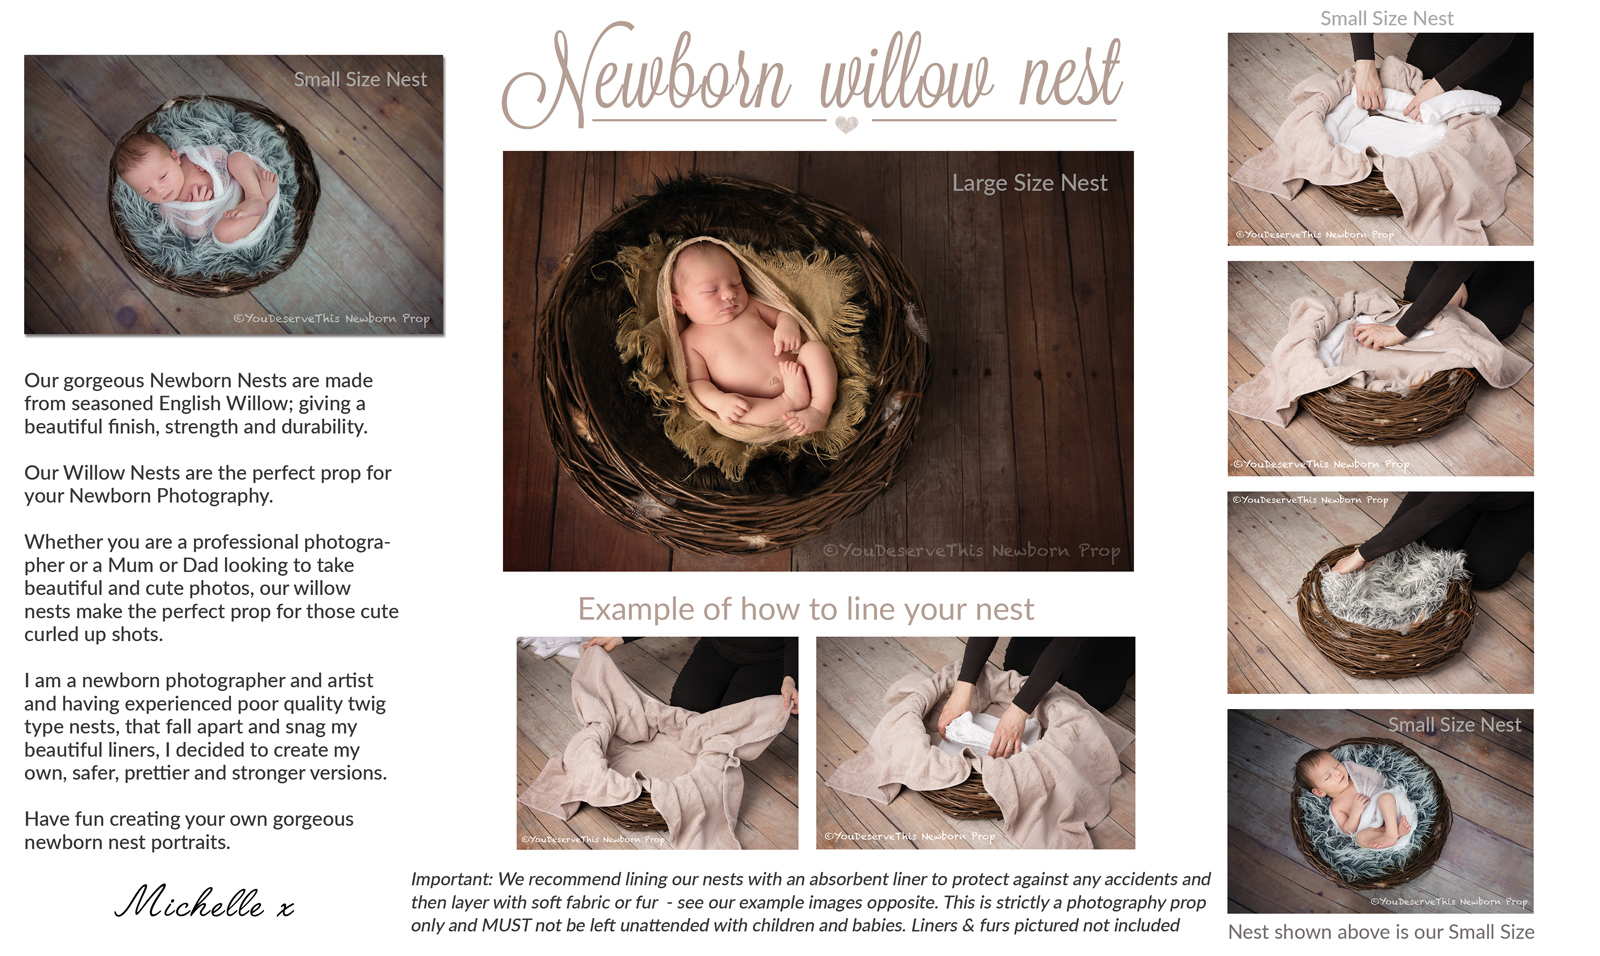 Newborn photography props - Photo Nest Prop - English Willow Nest Props - learn how to line your newborn nest prop -  Learn More